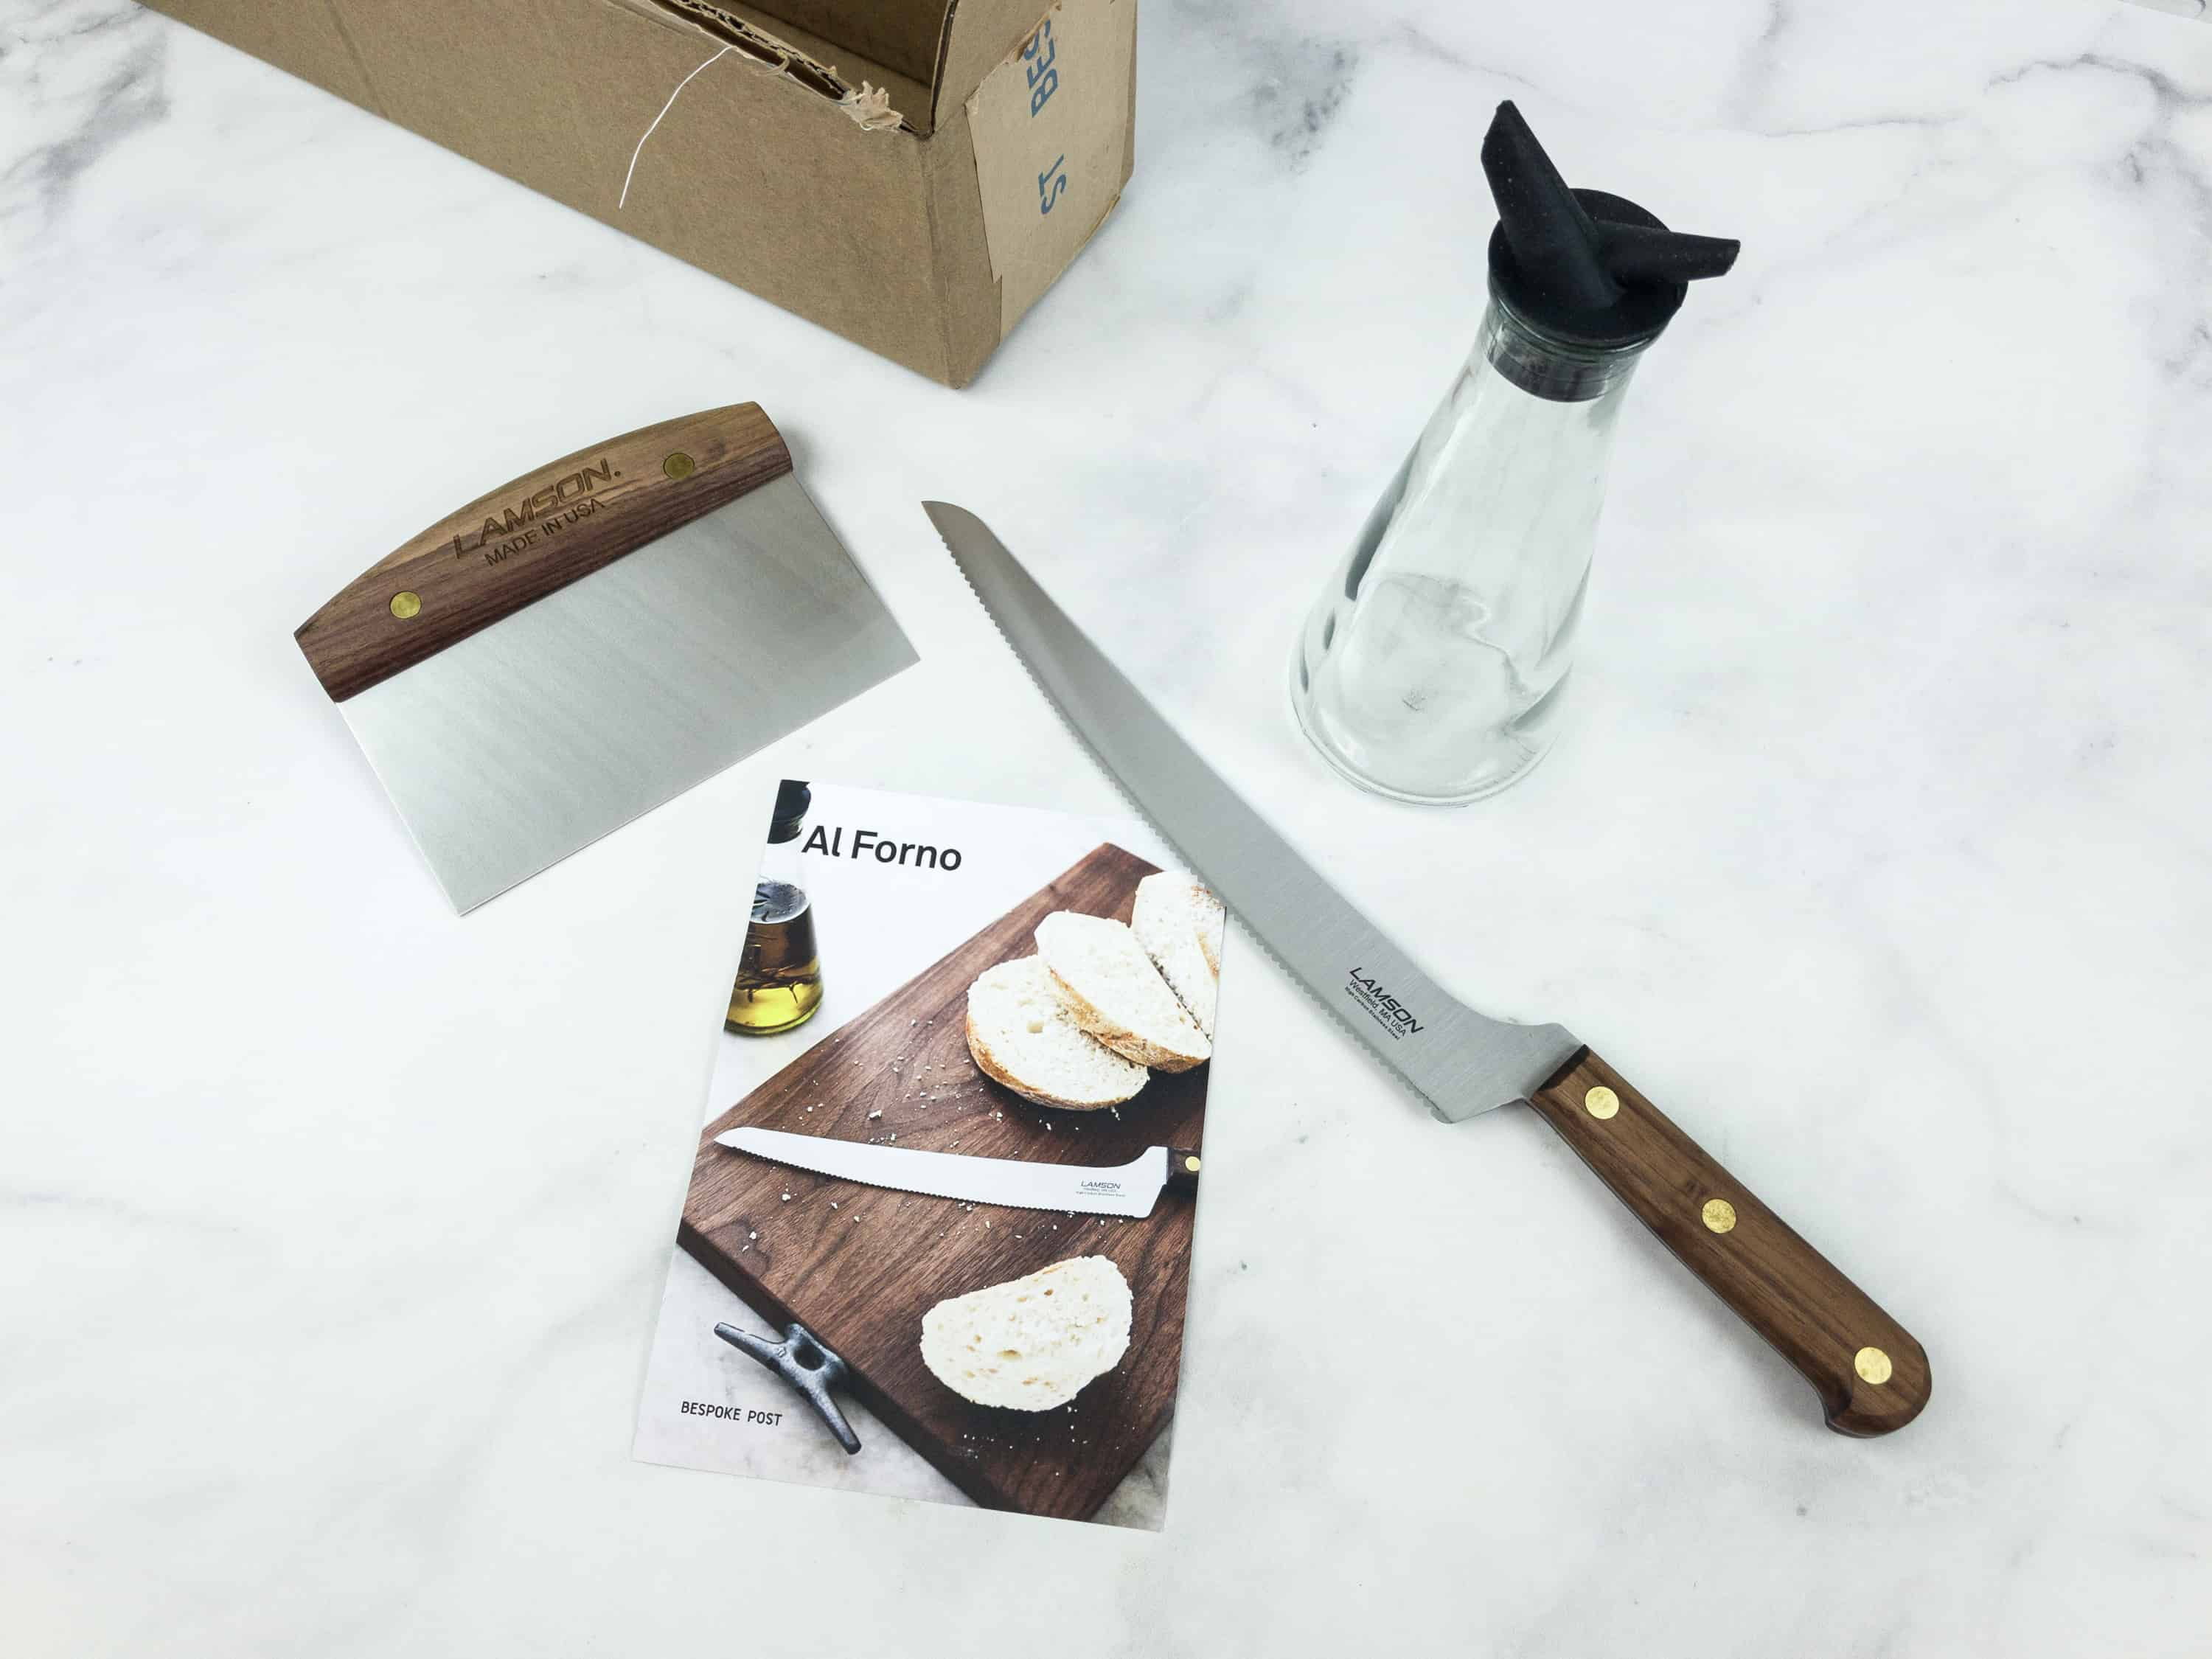 August 2018 Bespoke Post Box Review & Coupon – AL FORNO